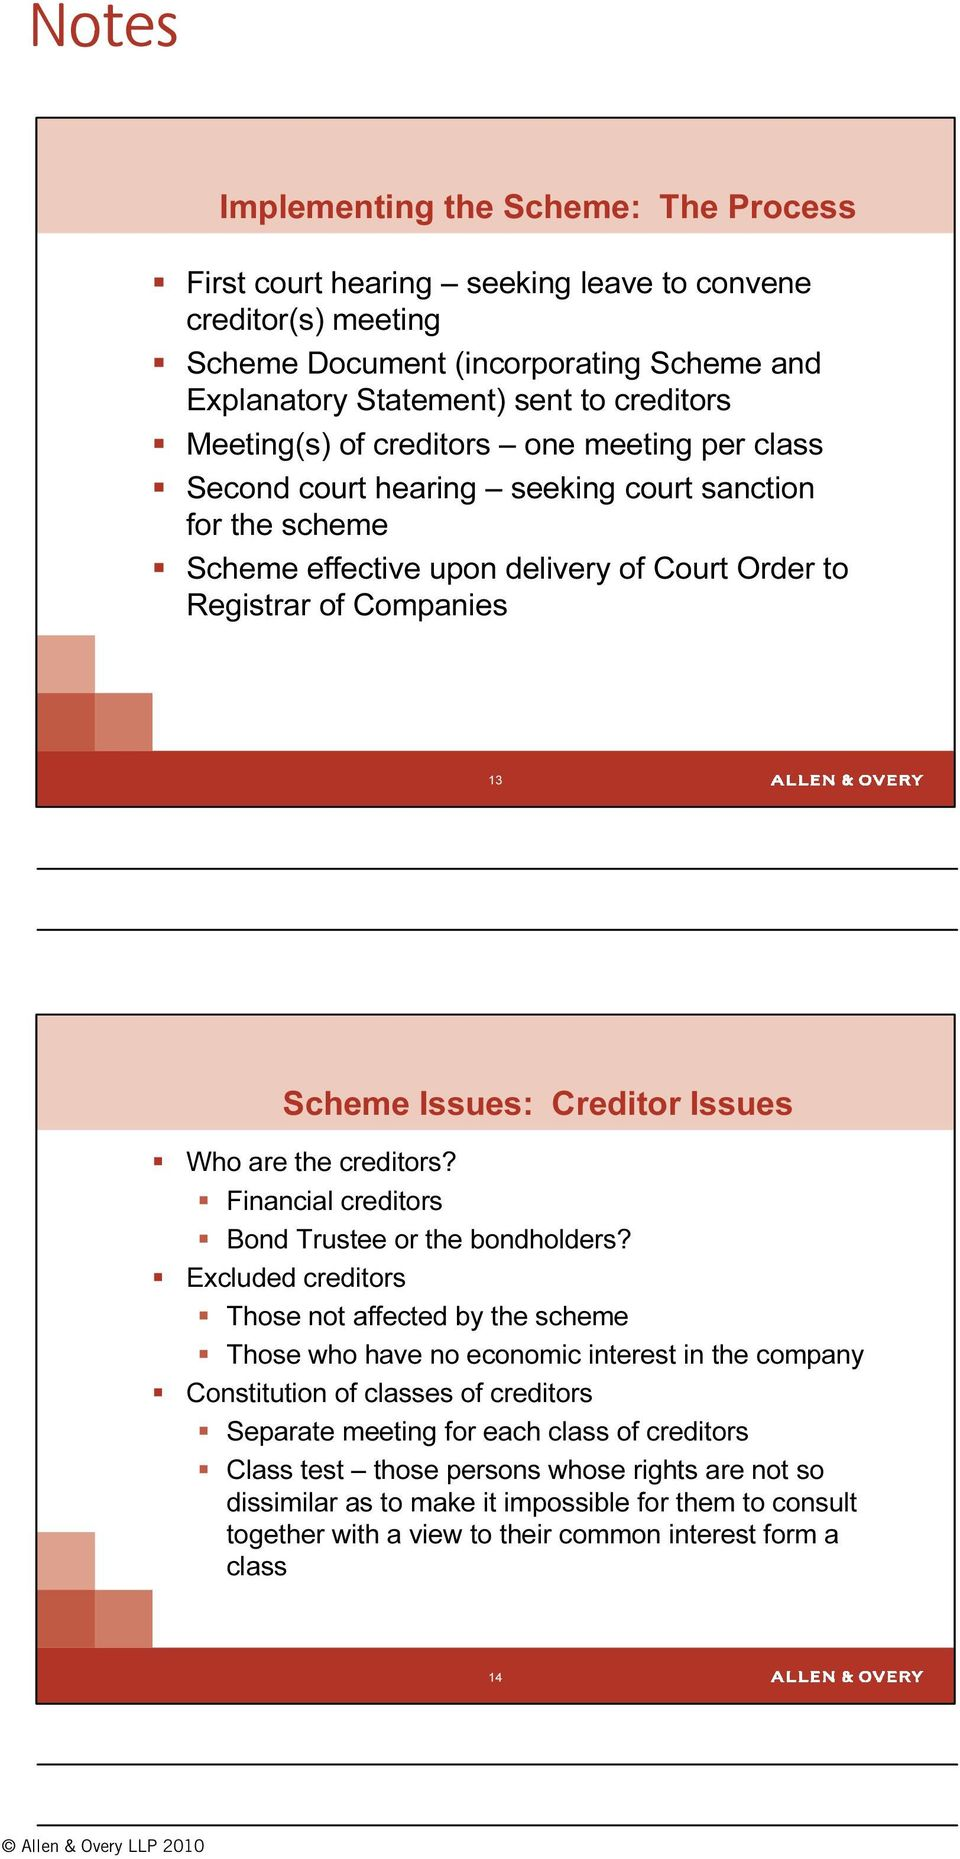 Who are the creditors? Financial creditors Bond Trustee or the bondholders?